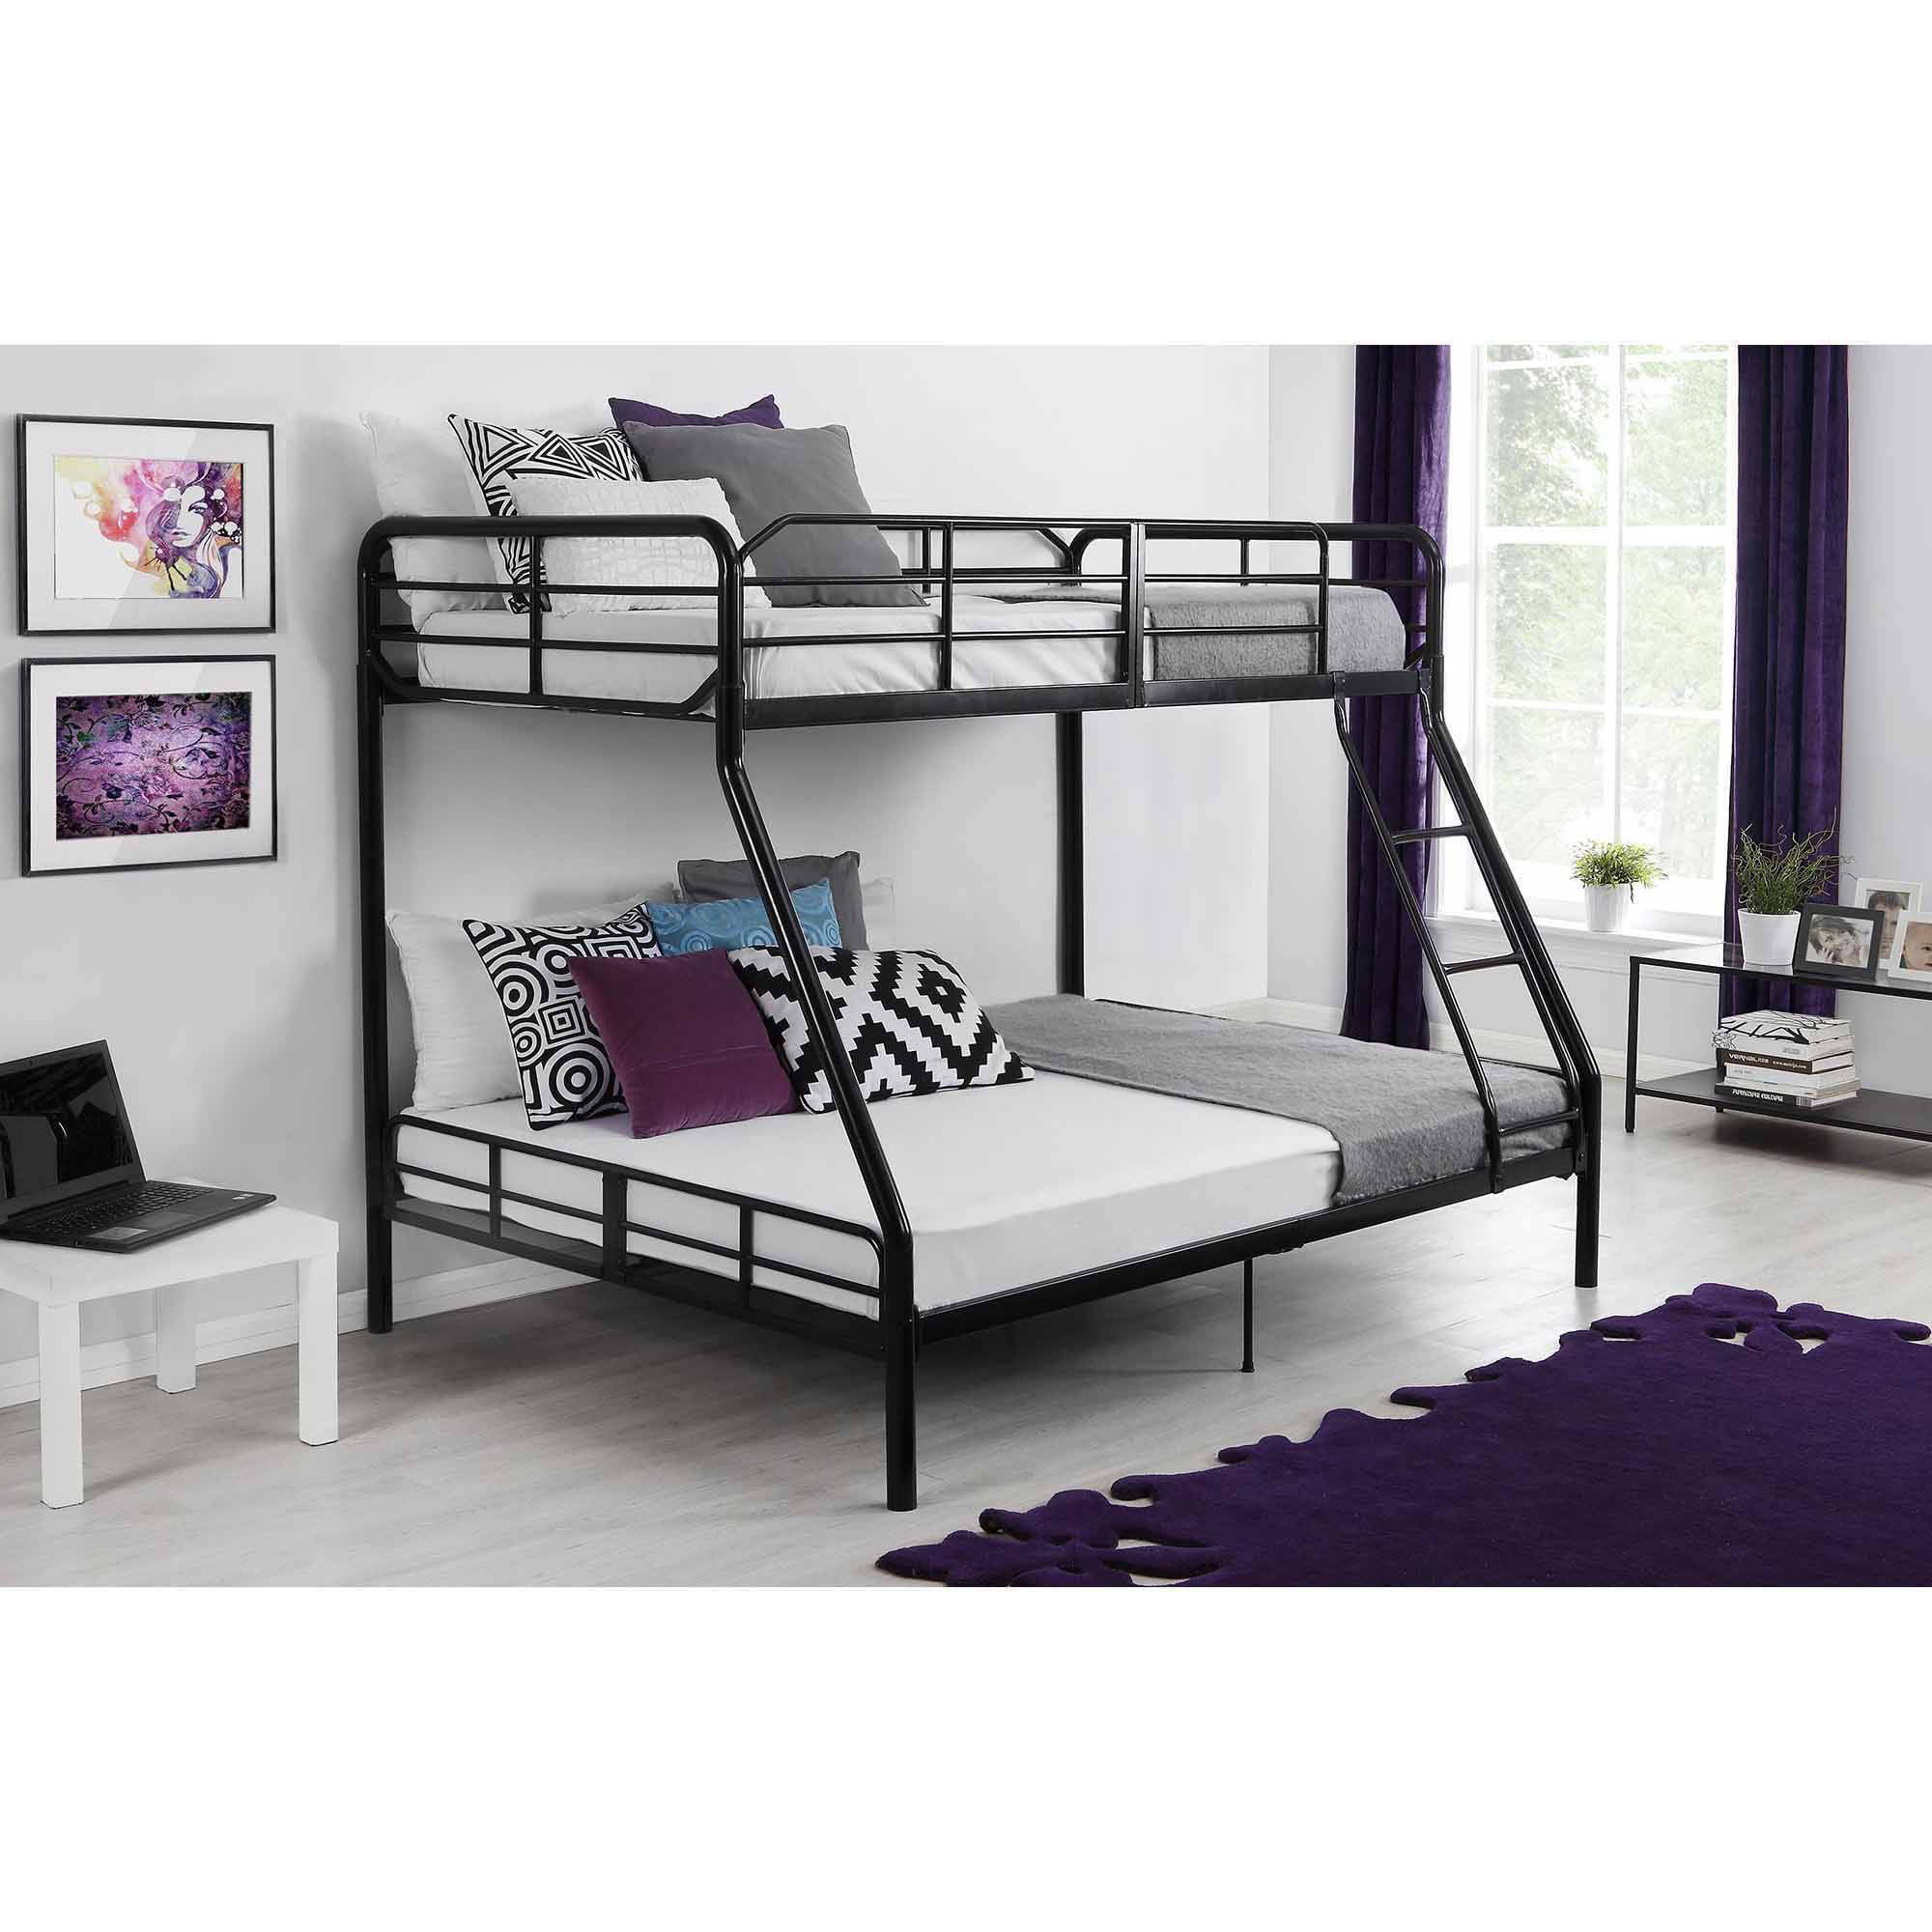 Tips for Purchasing Twin Mattress for Sale